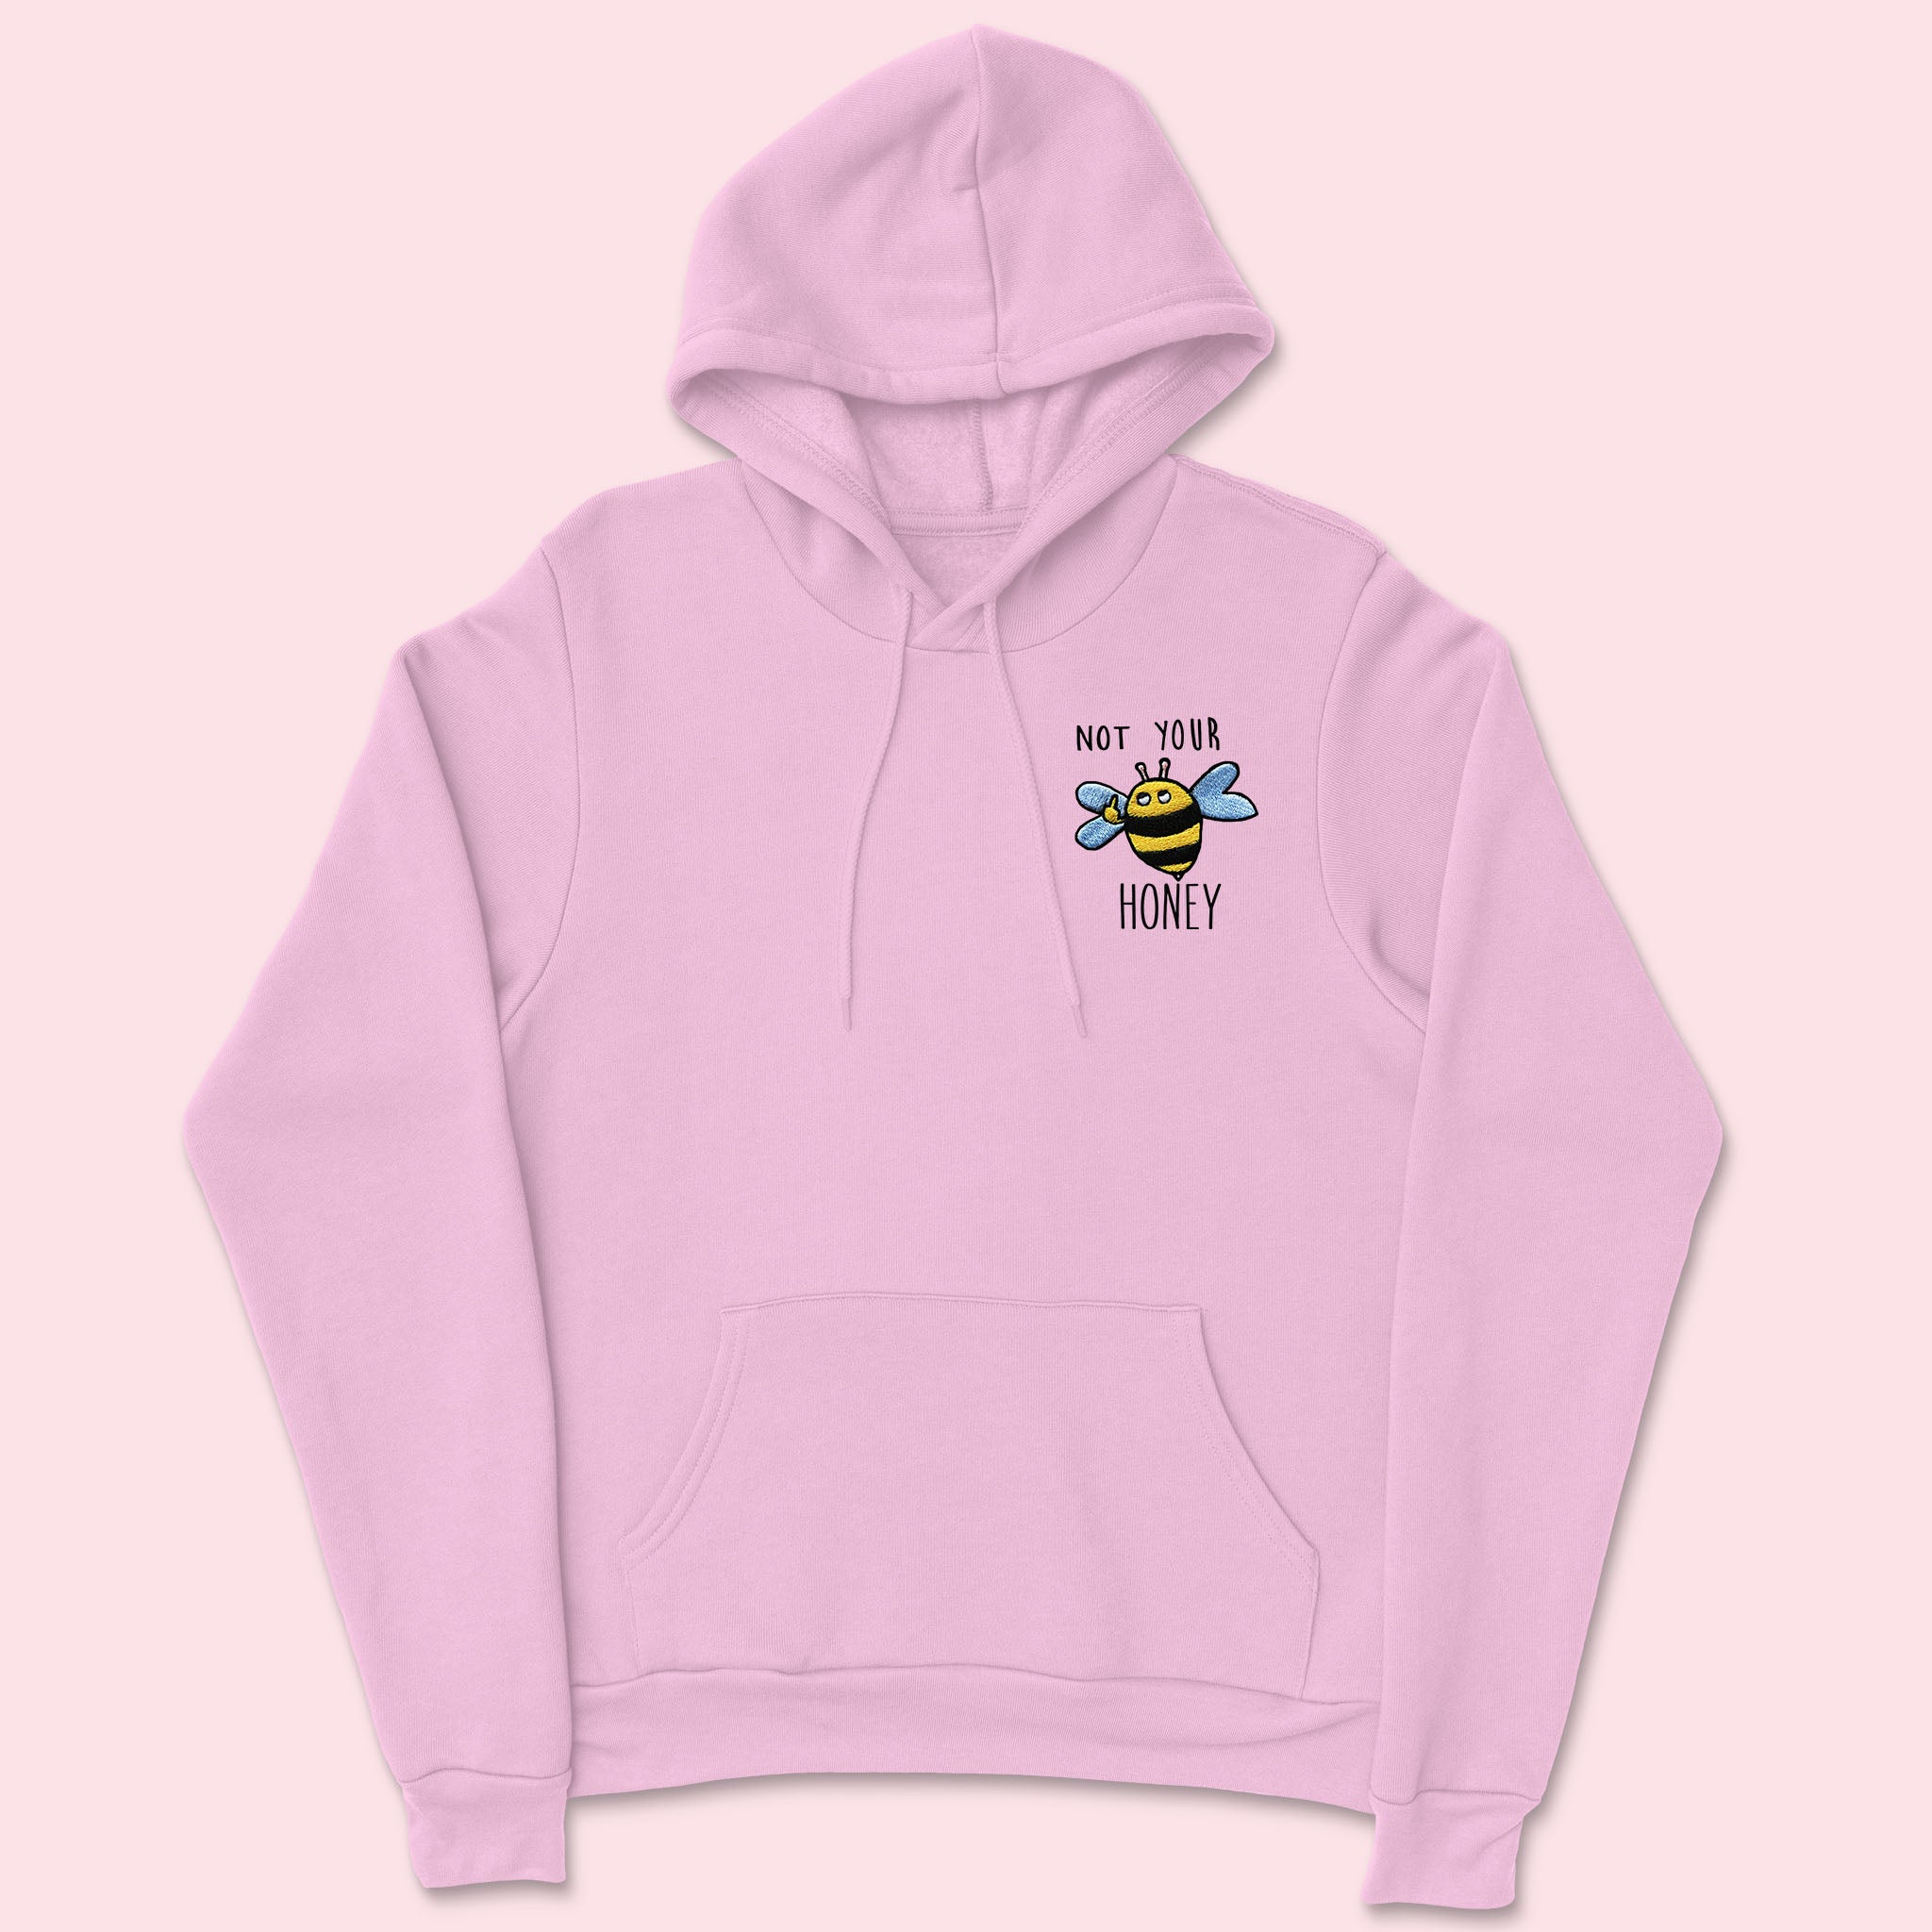 NOT YOUR HONEY- Embroidered Unisex Hoodie